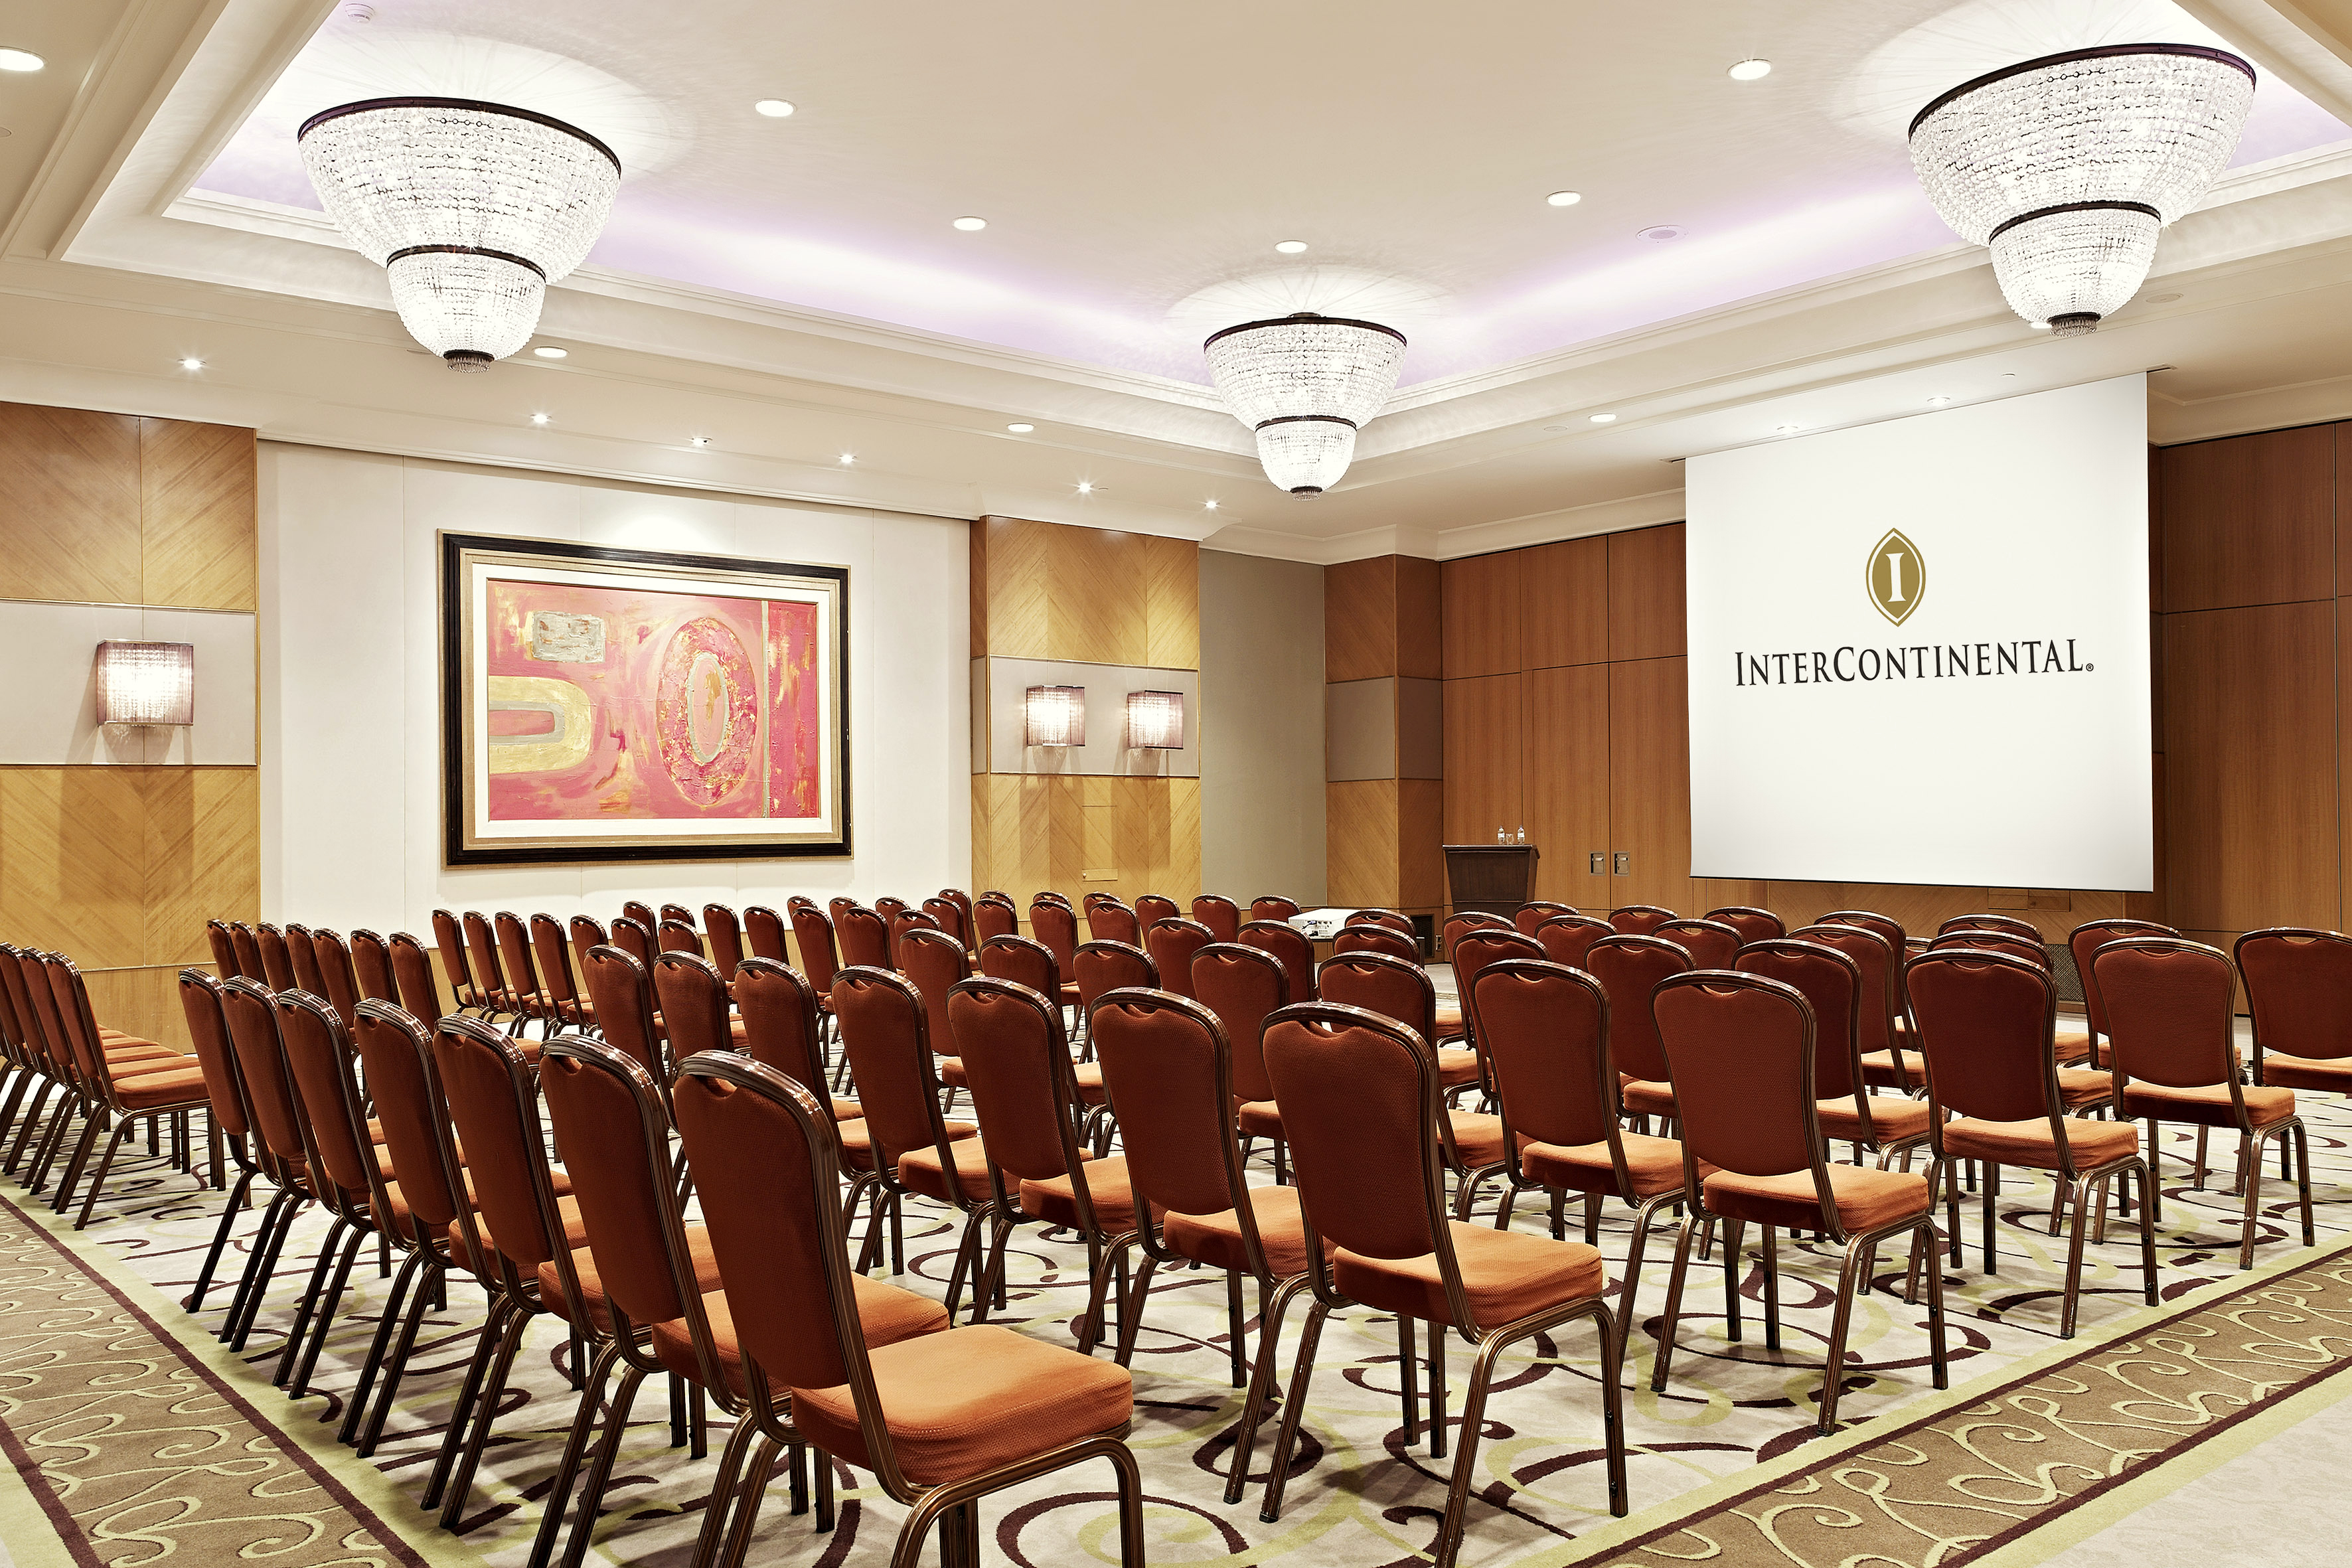 Intercontinental meeting room